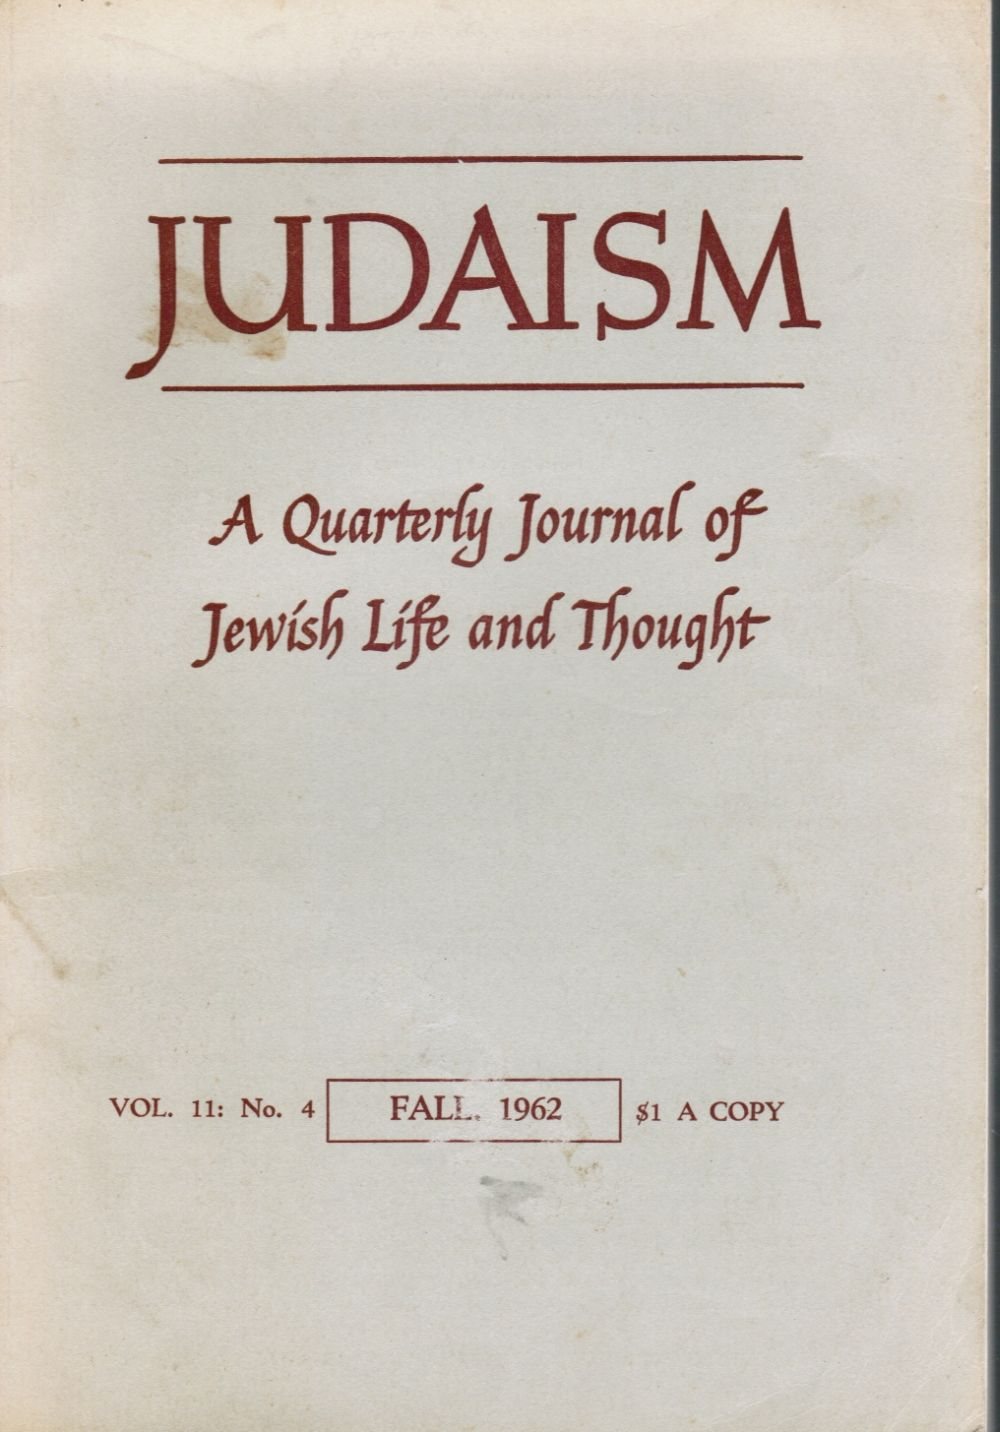 Image for JUDAISM -- a Quarterly Journal of Jewish Life and Thought: Vol 11, No.4, Fall 1962 Allen Ginsberg, Isaac Bashevis Singer,